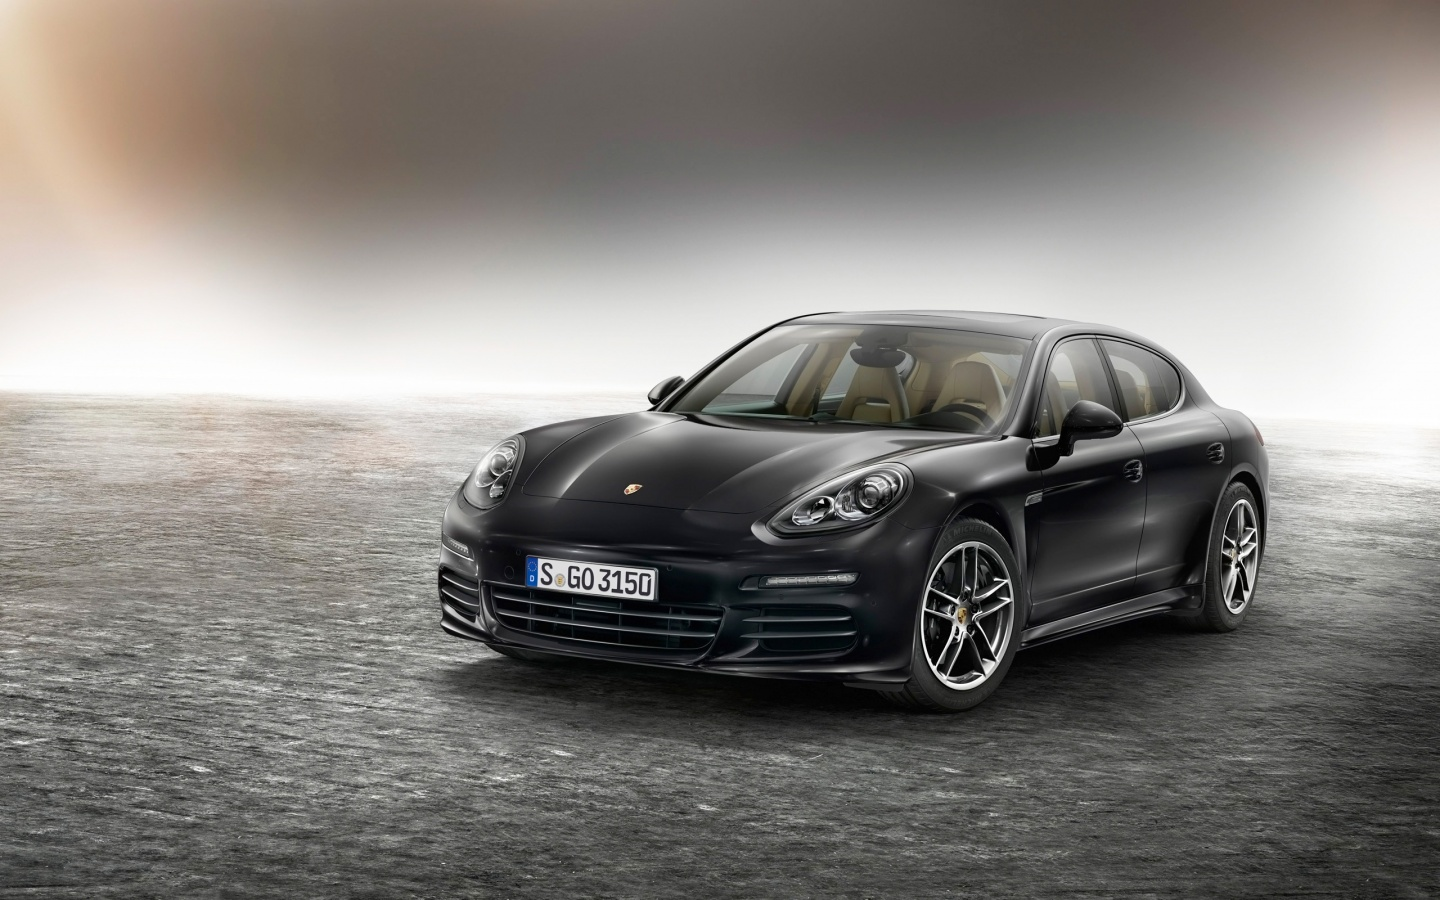 2015 Porsche Panamera Edition Wallpapers HD Wallpapers 1440x900